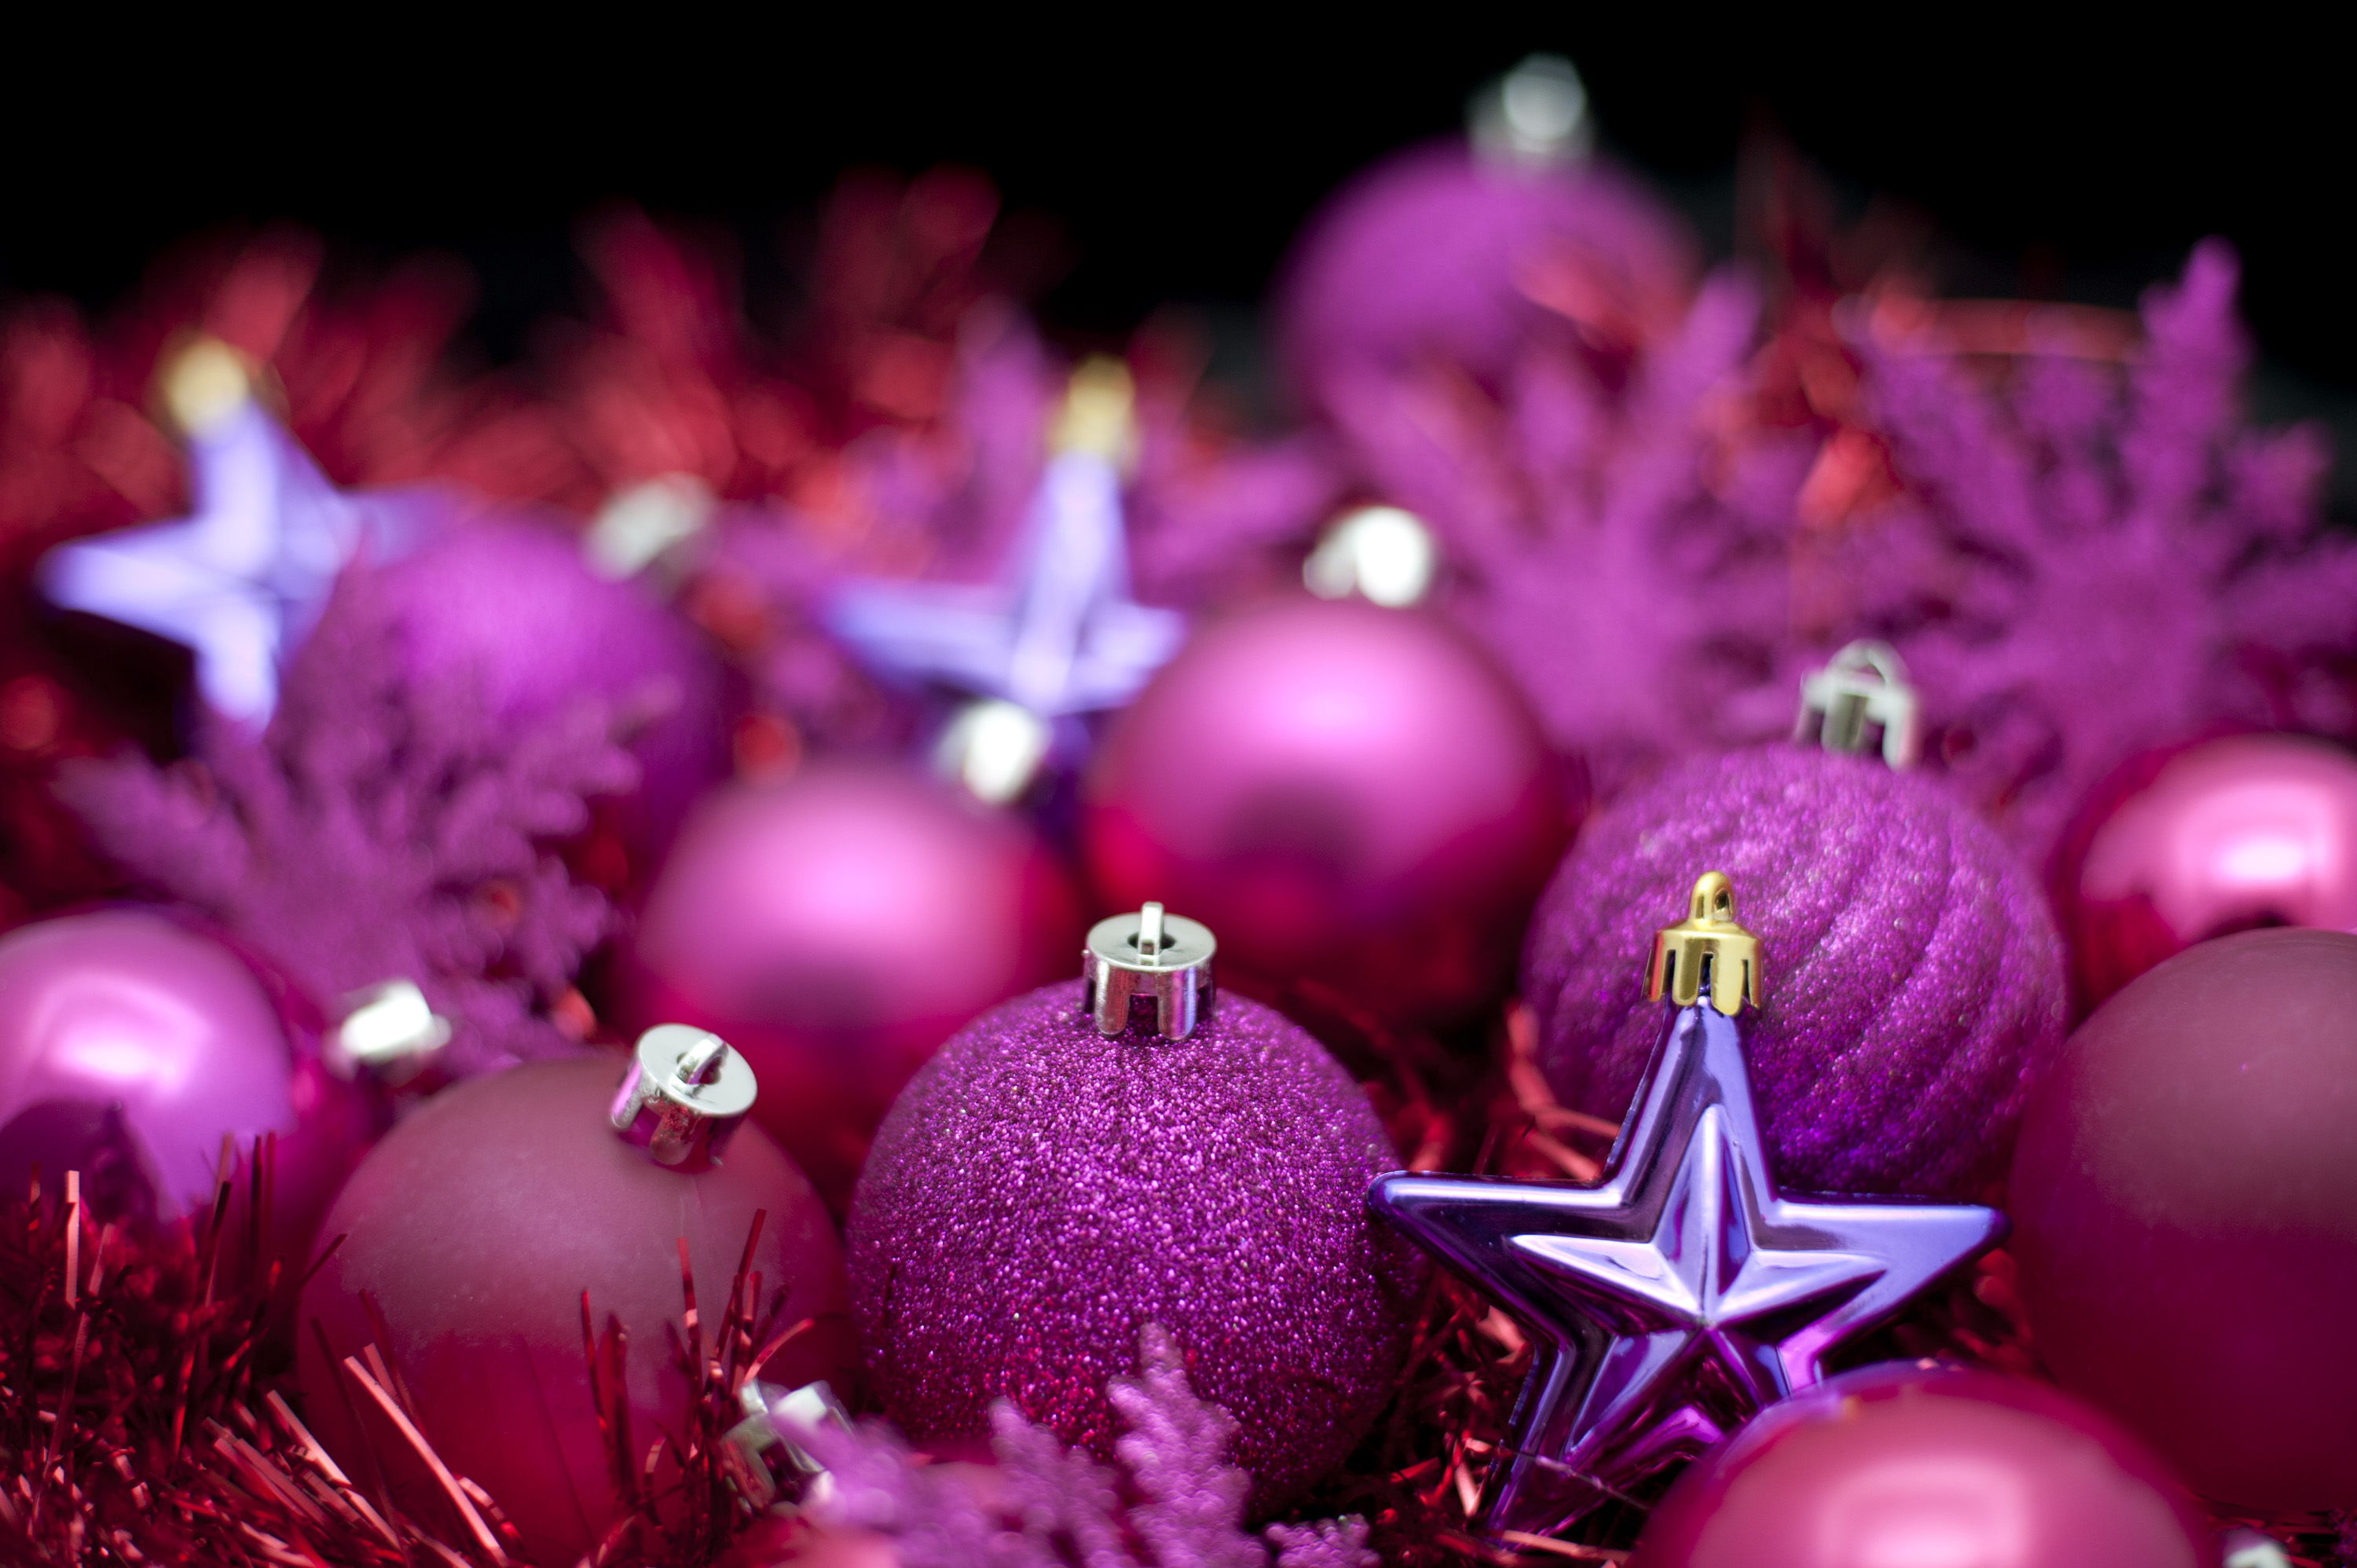 festive background of purple christmas decorations baubles and stars with shallow dof